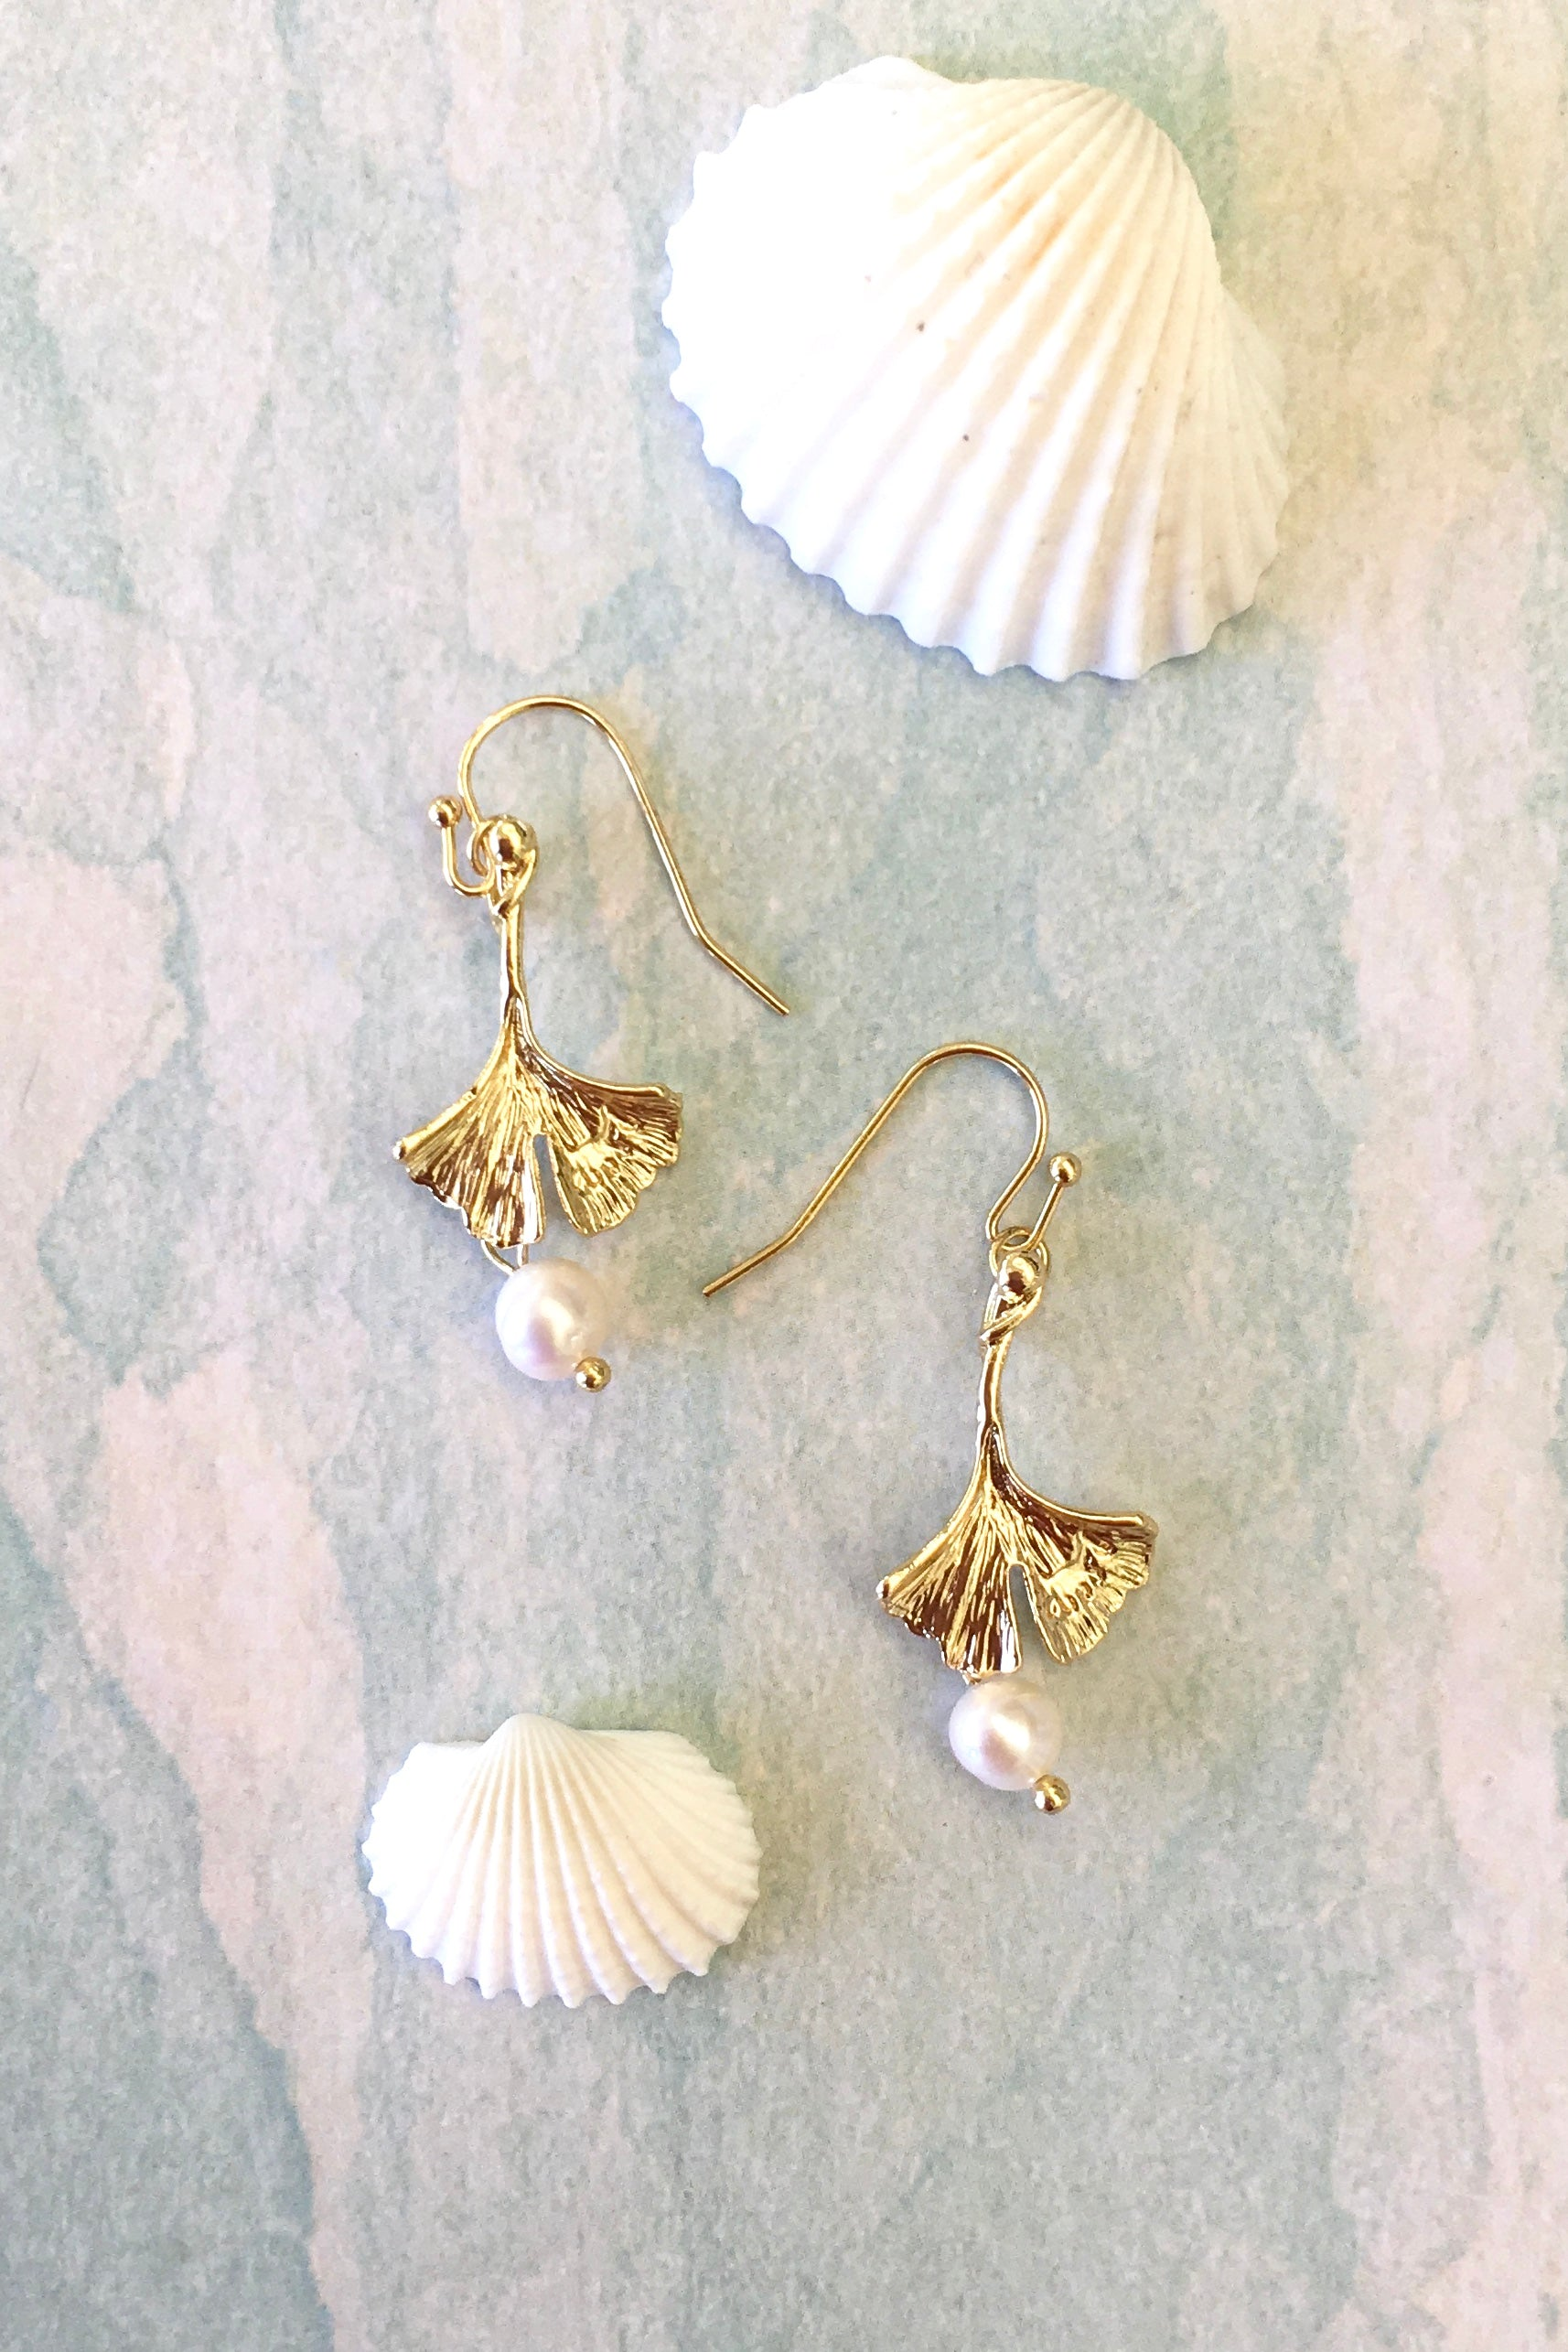 chic everyday earrings with pearls